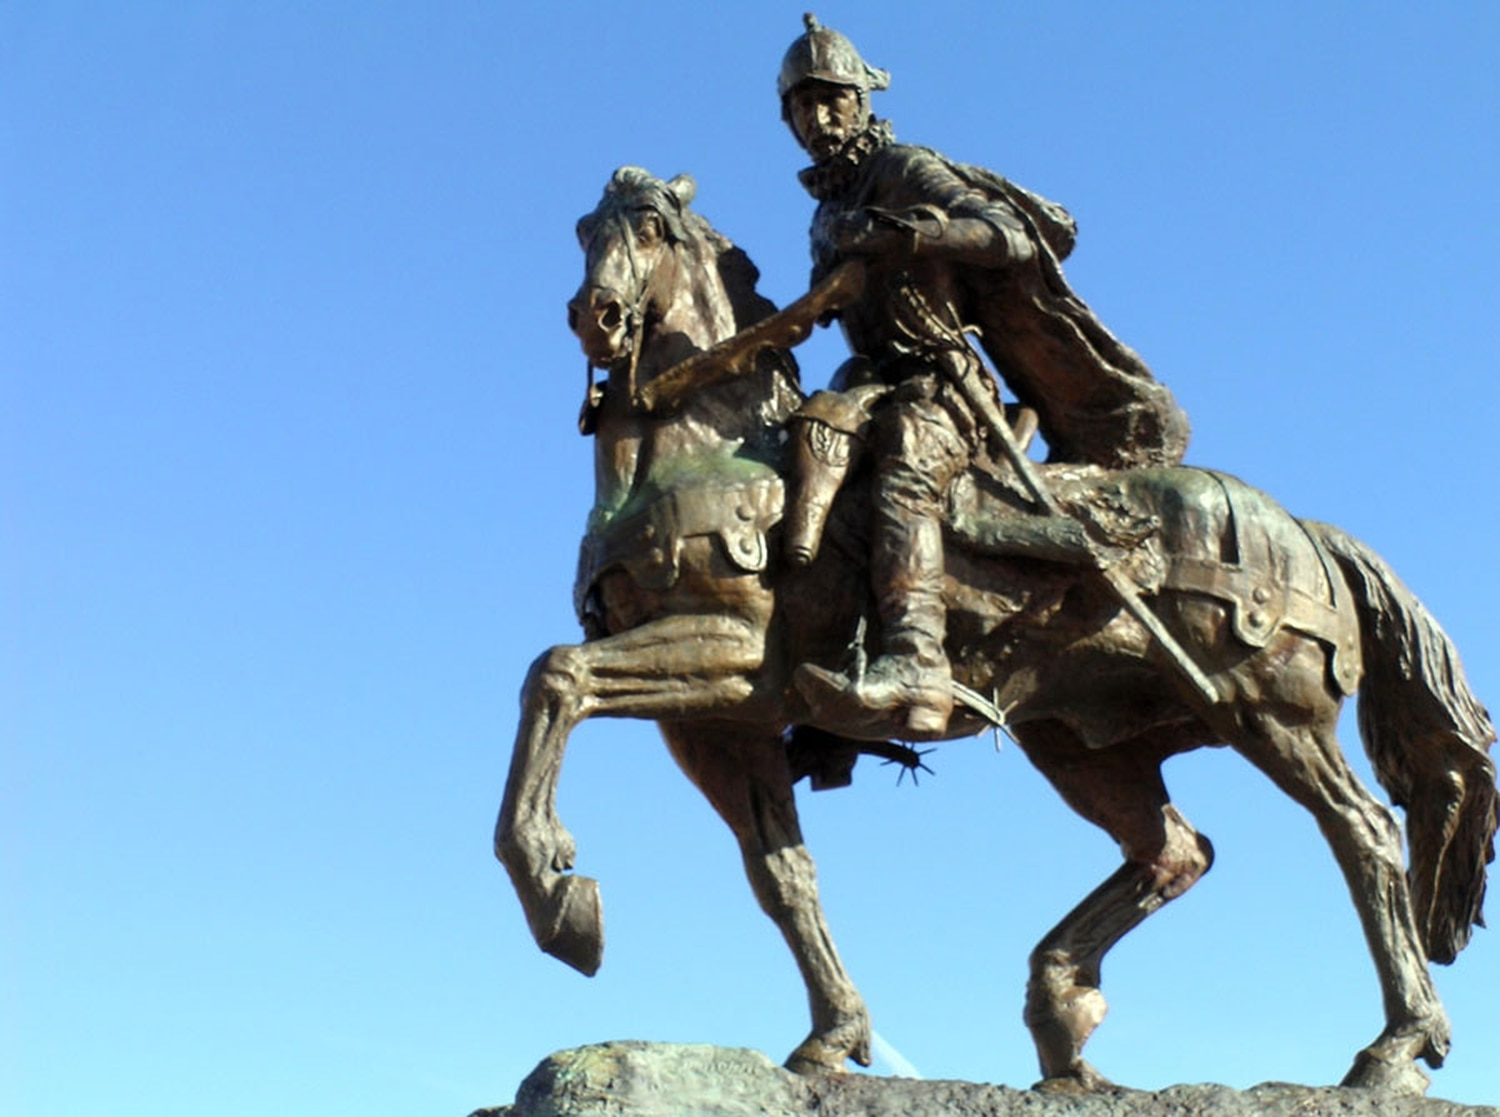 Statues of Juan de Oñate were removed from both Alcalde and Albuquerque.